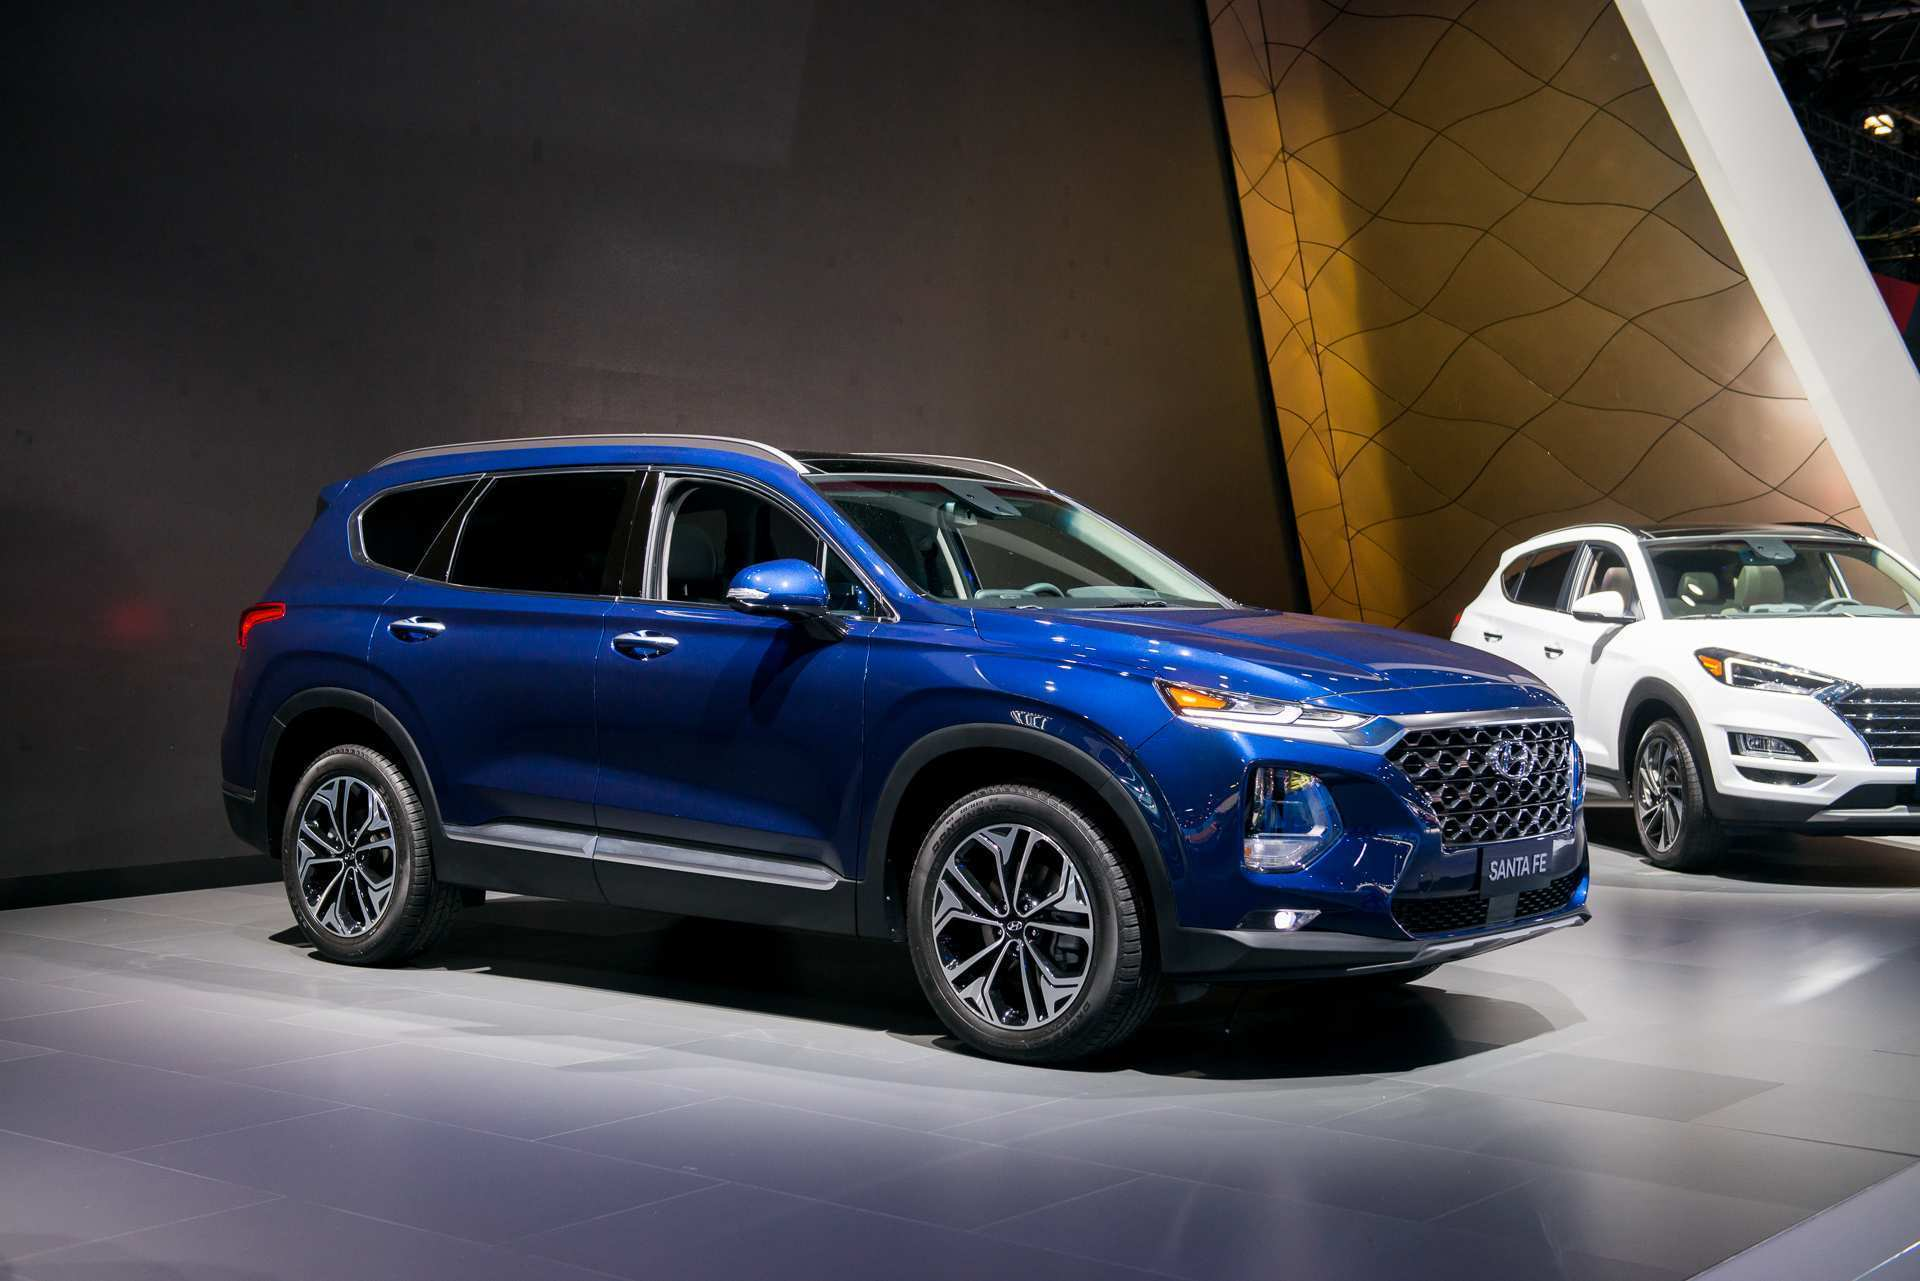 15 All New 2019 Hyundai Santa Fe Research New